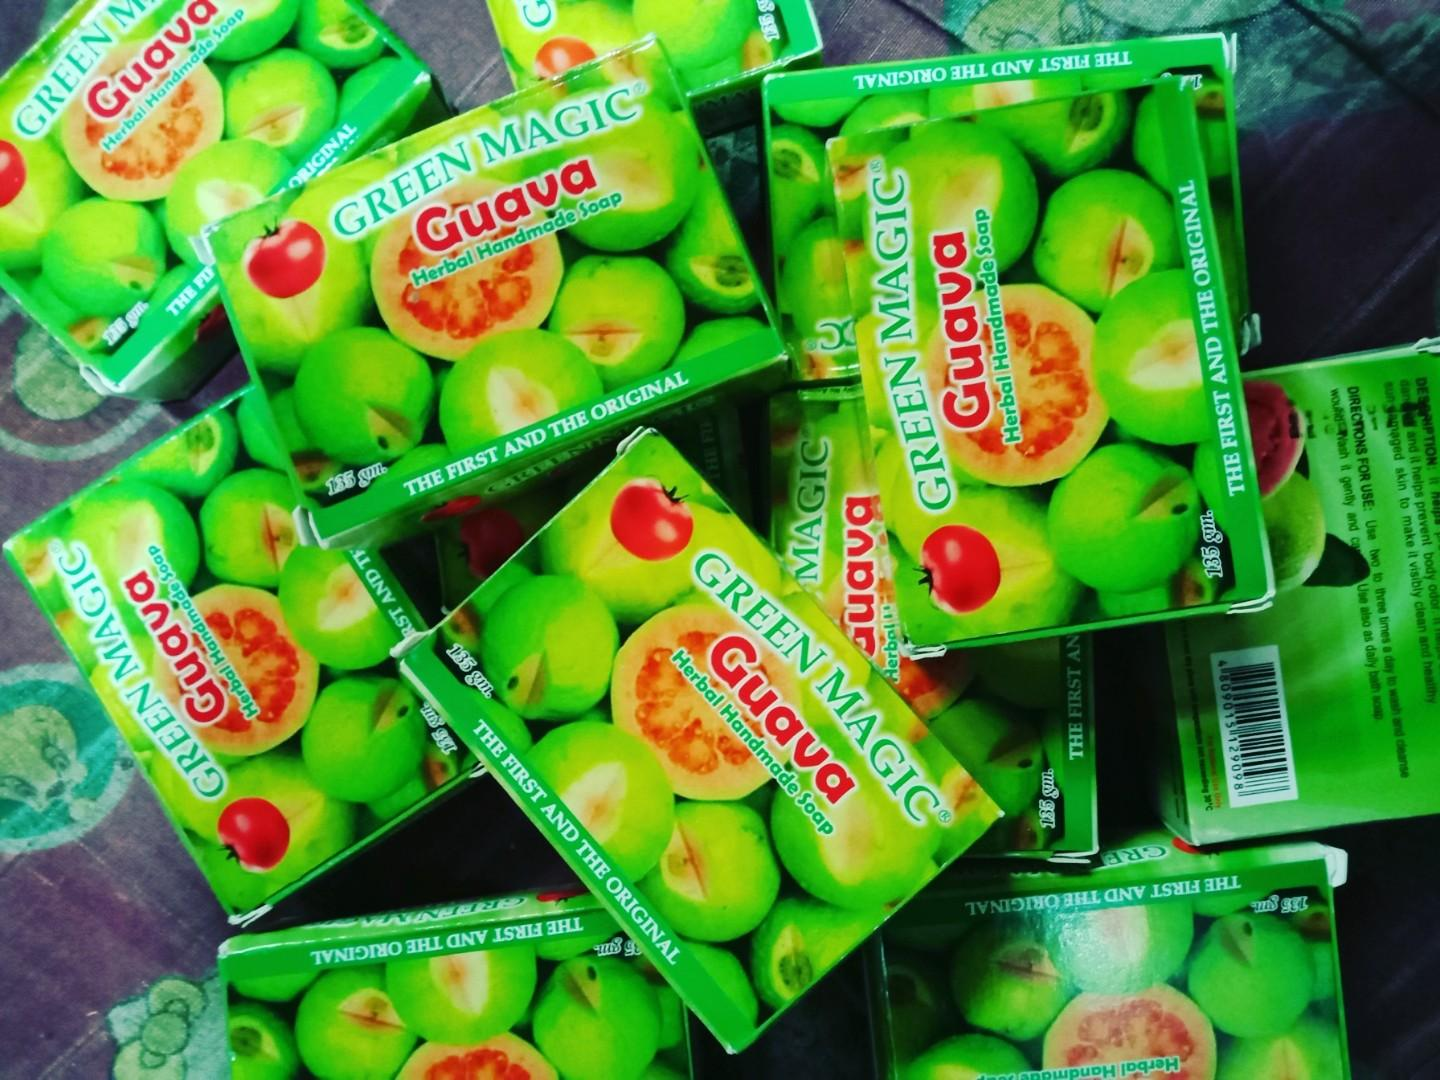 Green magic guava soap on Carousell